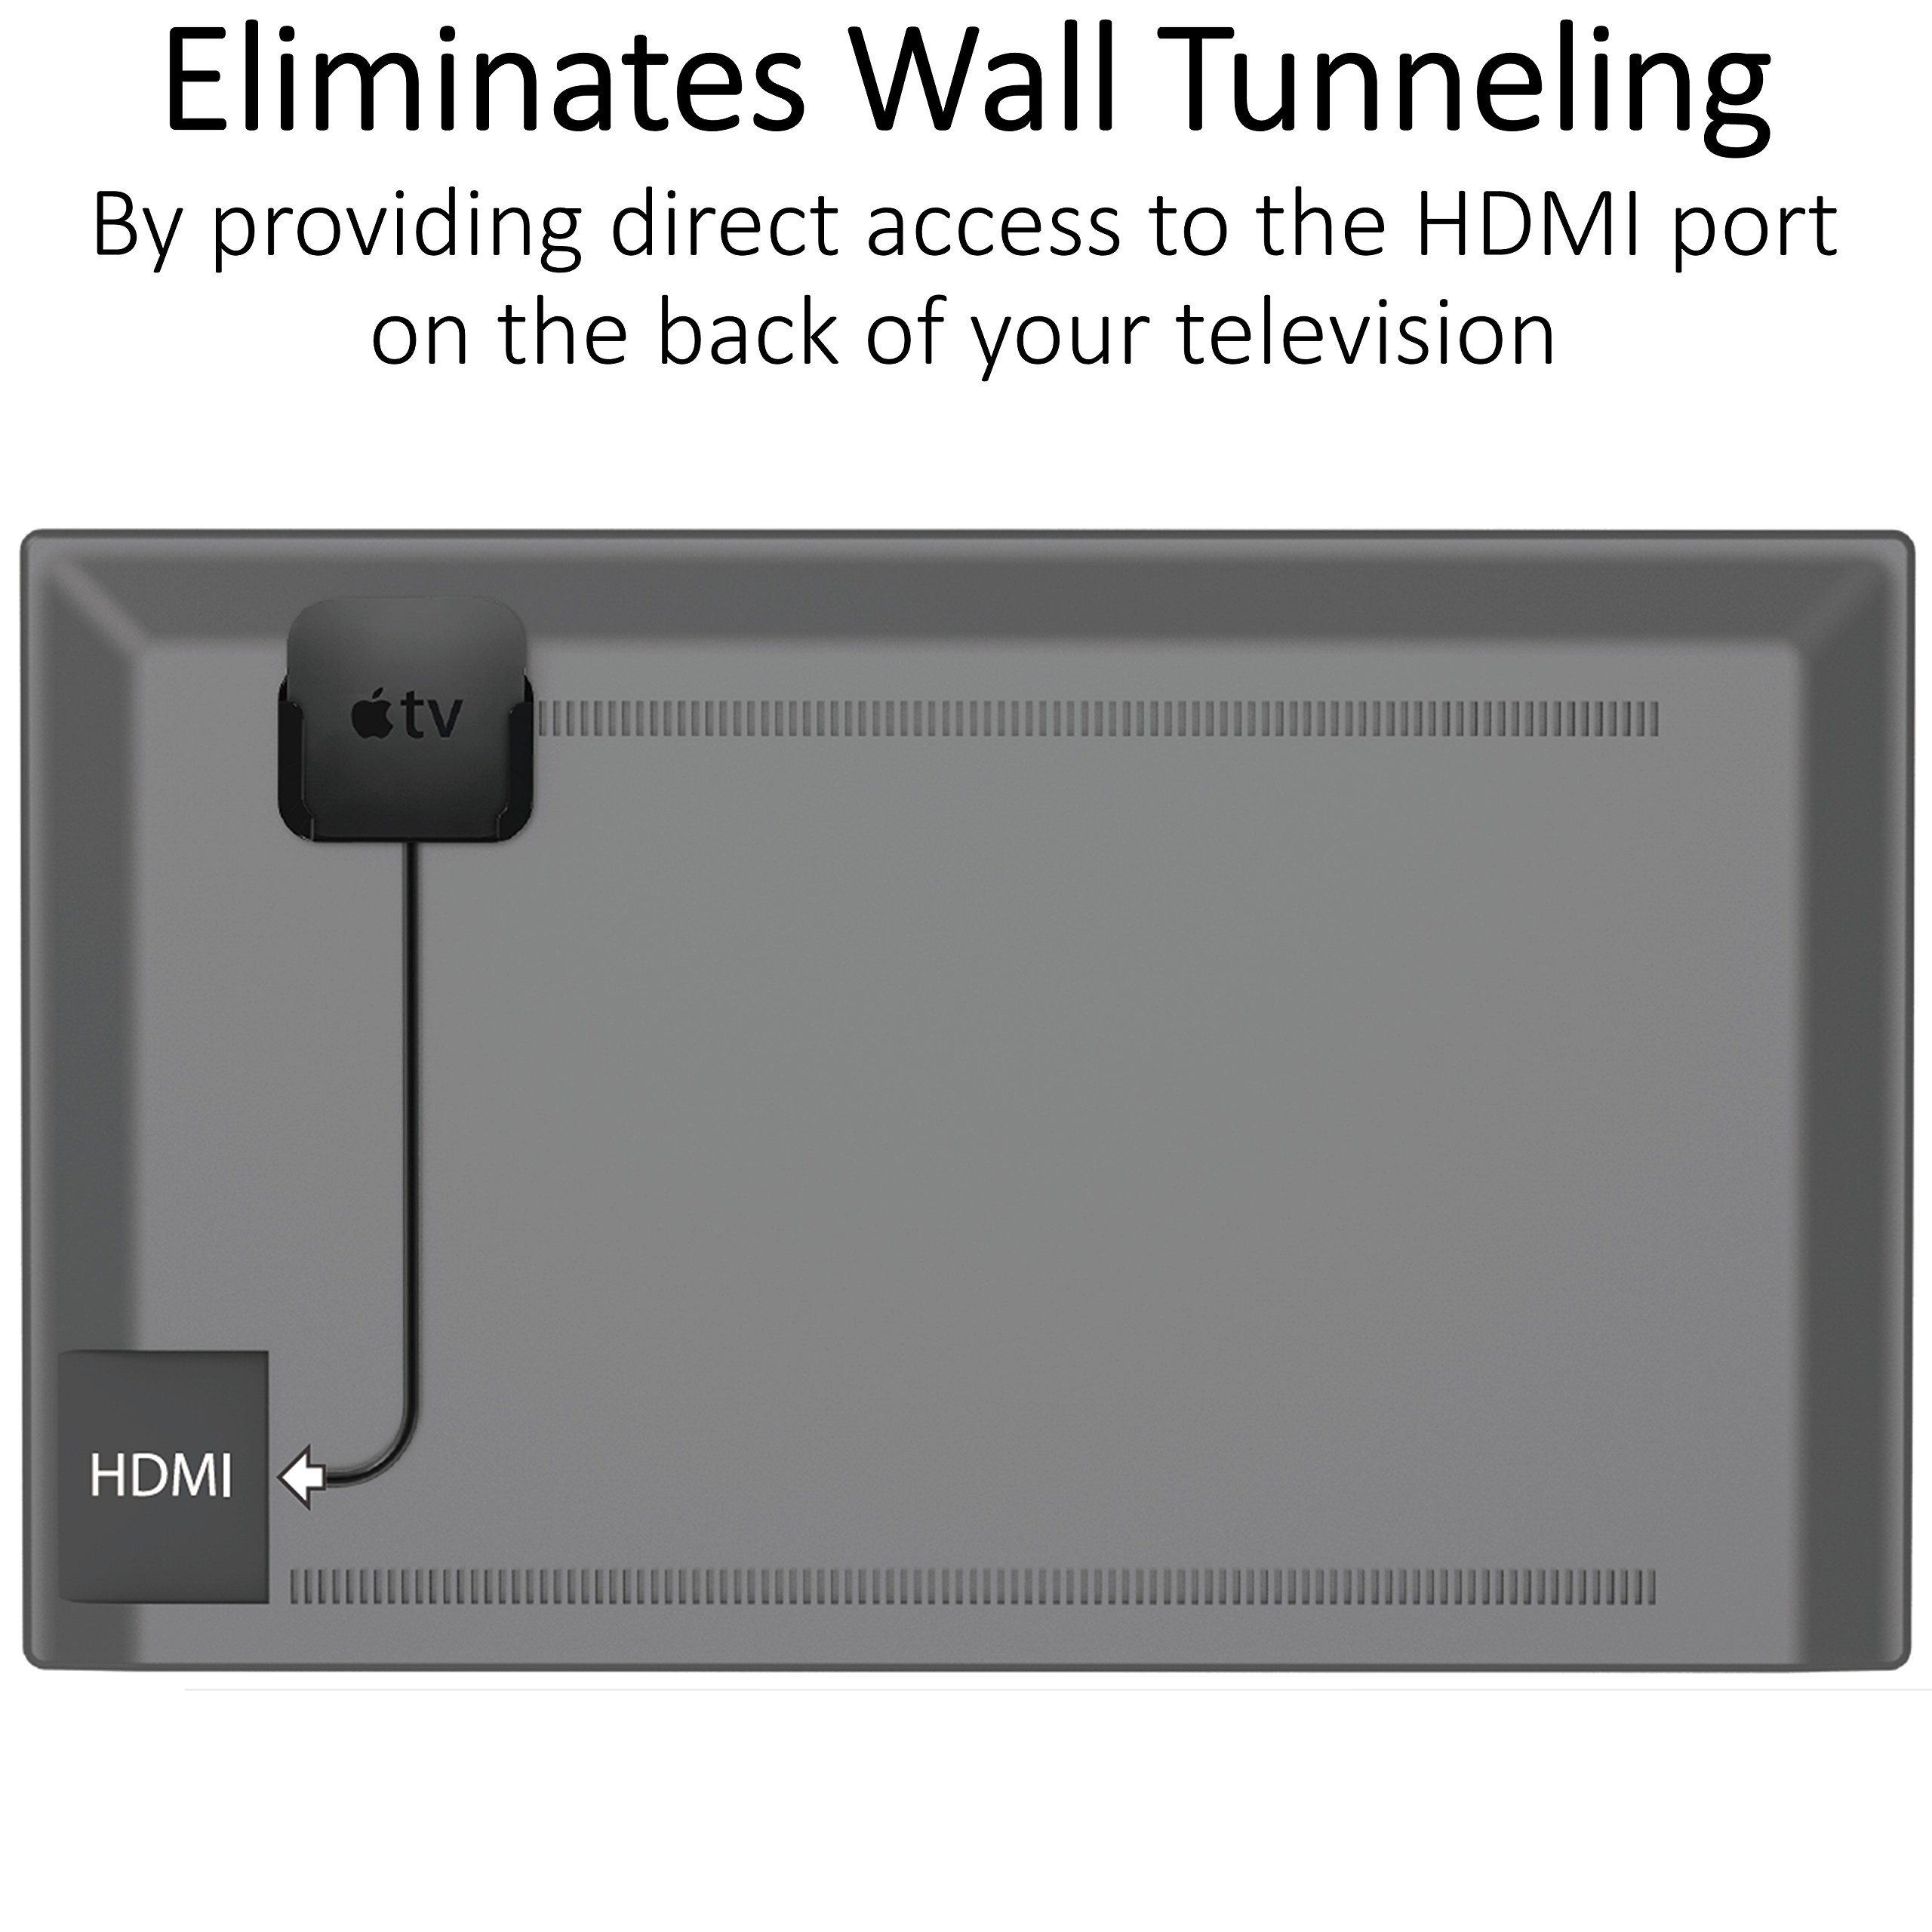 TotalMount Apple TV Mount - Compatible with all Apple TVs including Apple TV 4K by TotalMount (Image #3)